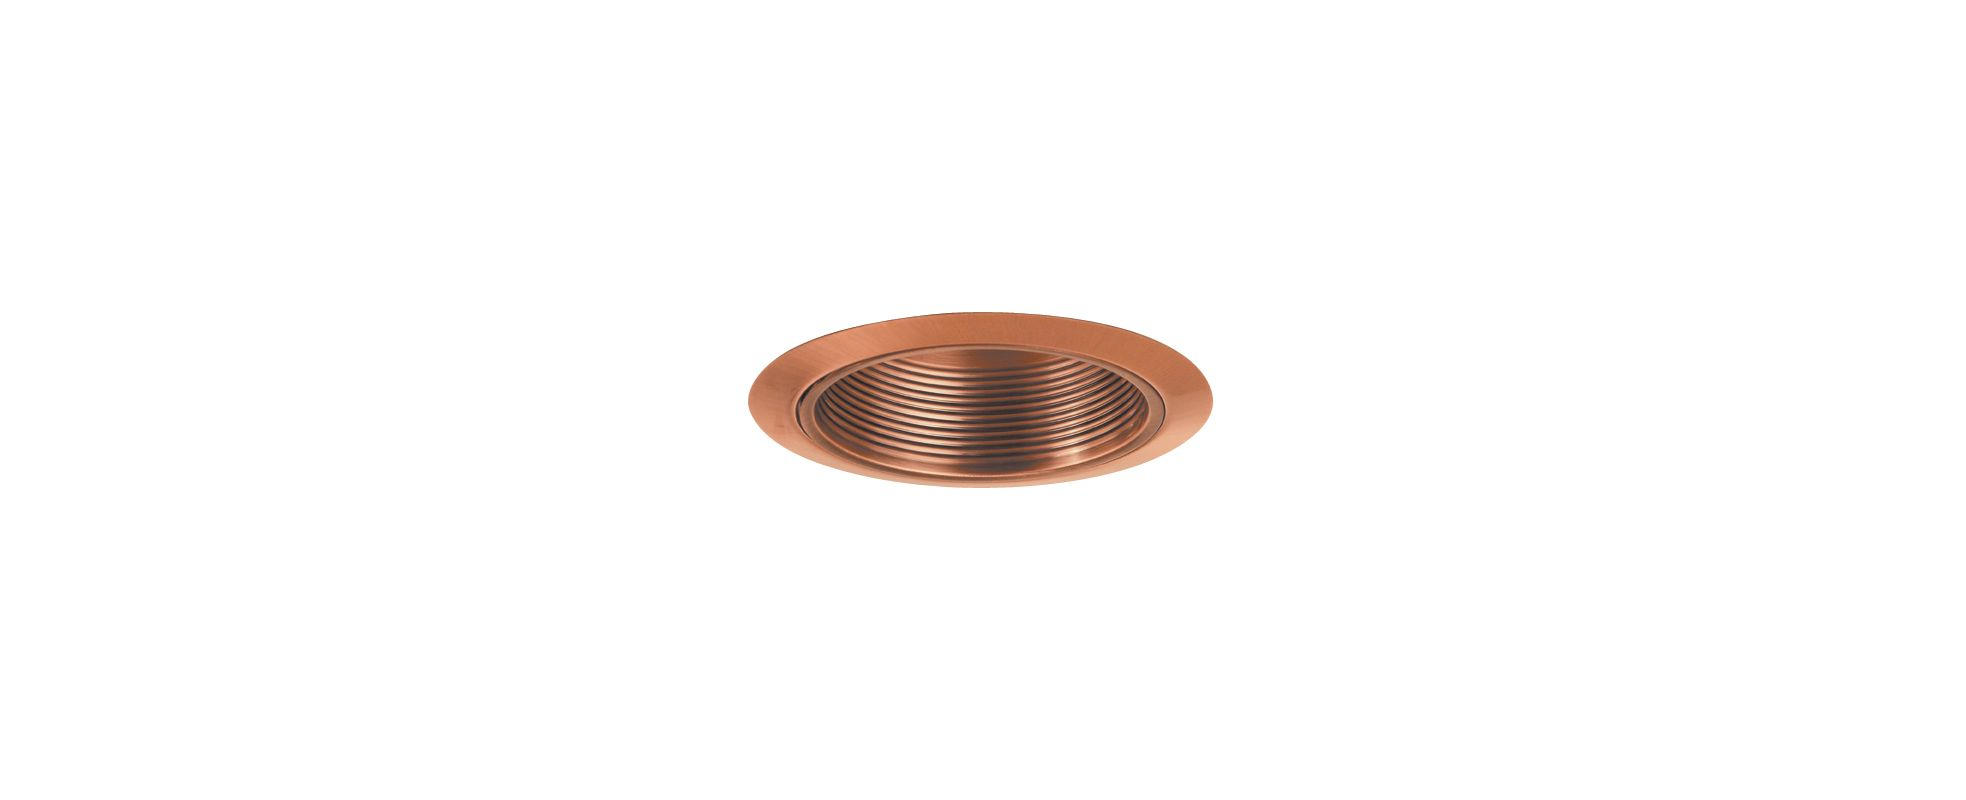 "Elco ELM40 6"" Recessed Lighting Trim - Metal Stepped Baffle Copper"